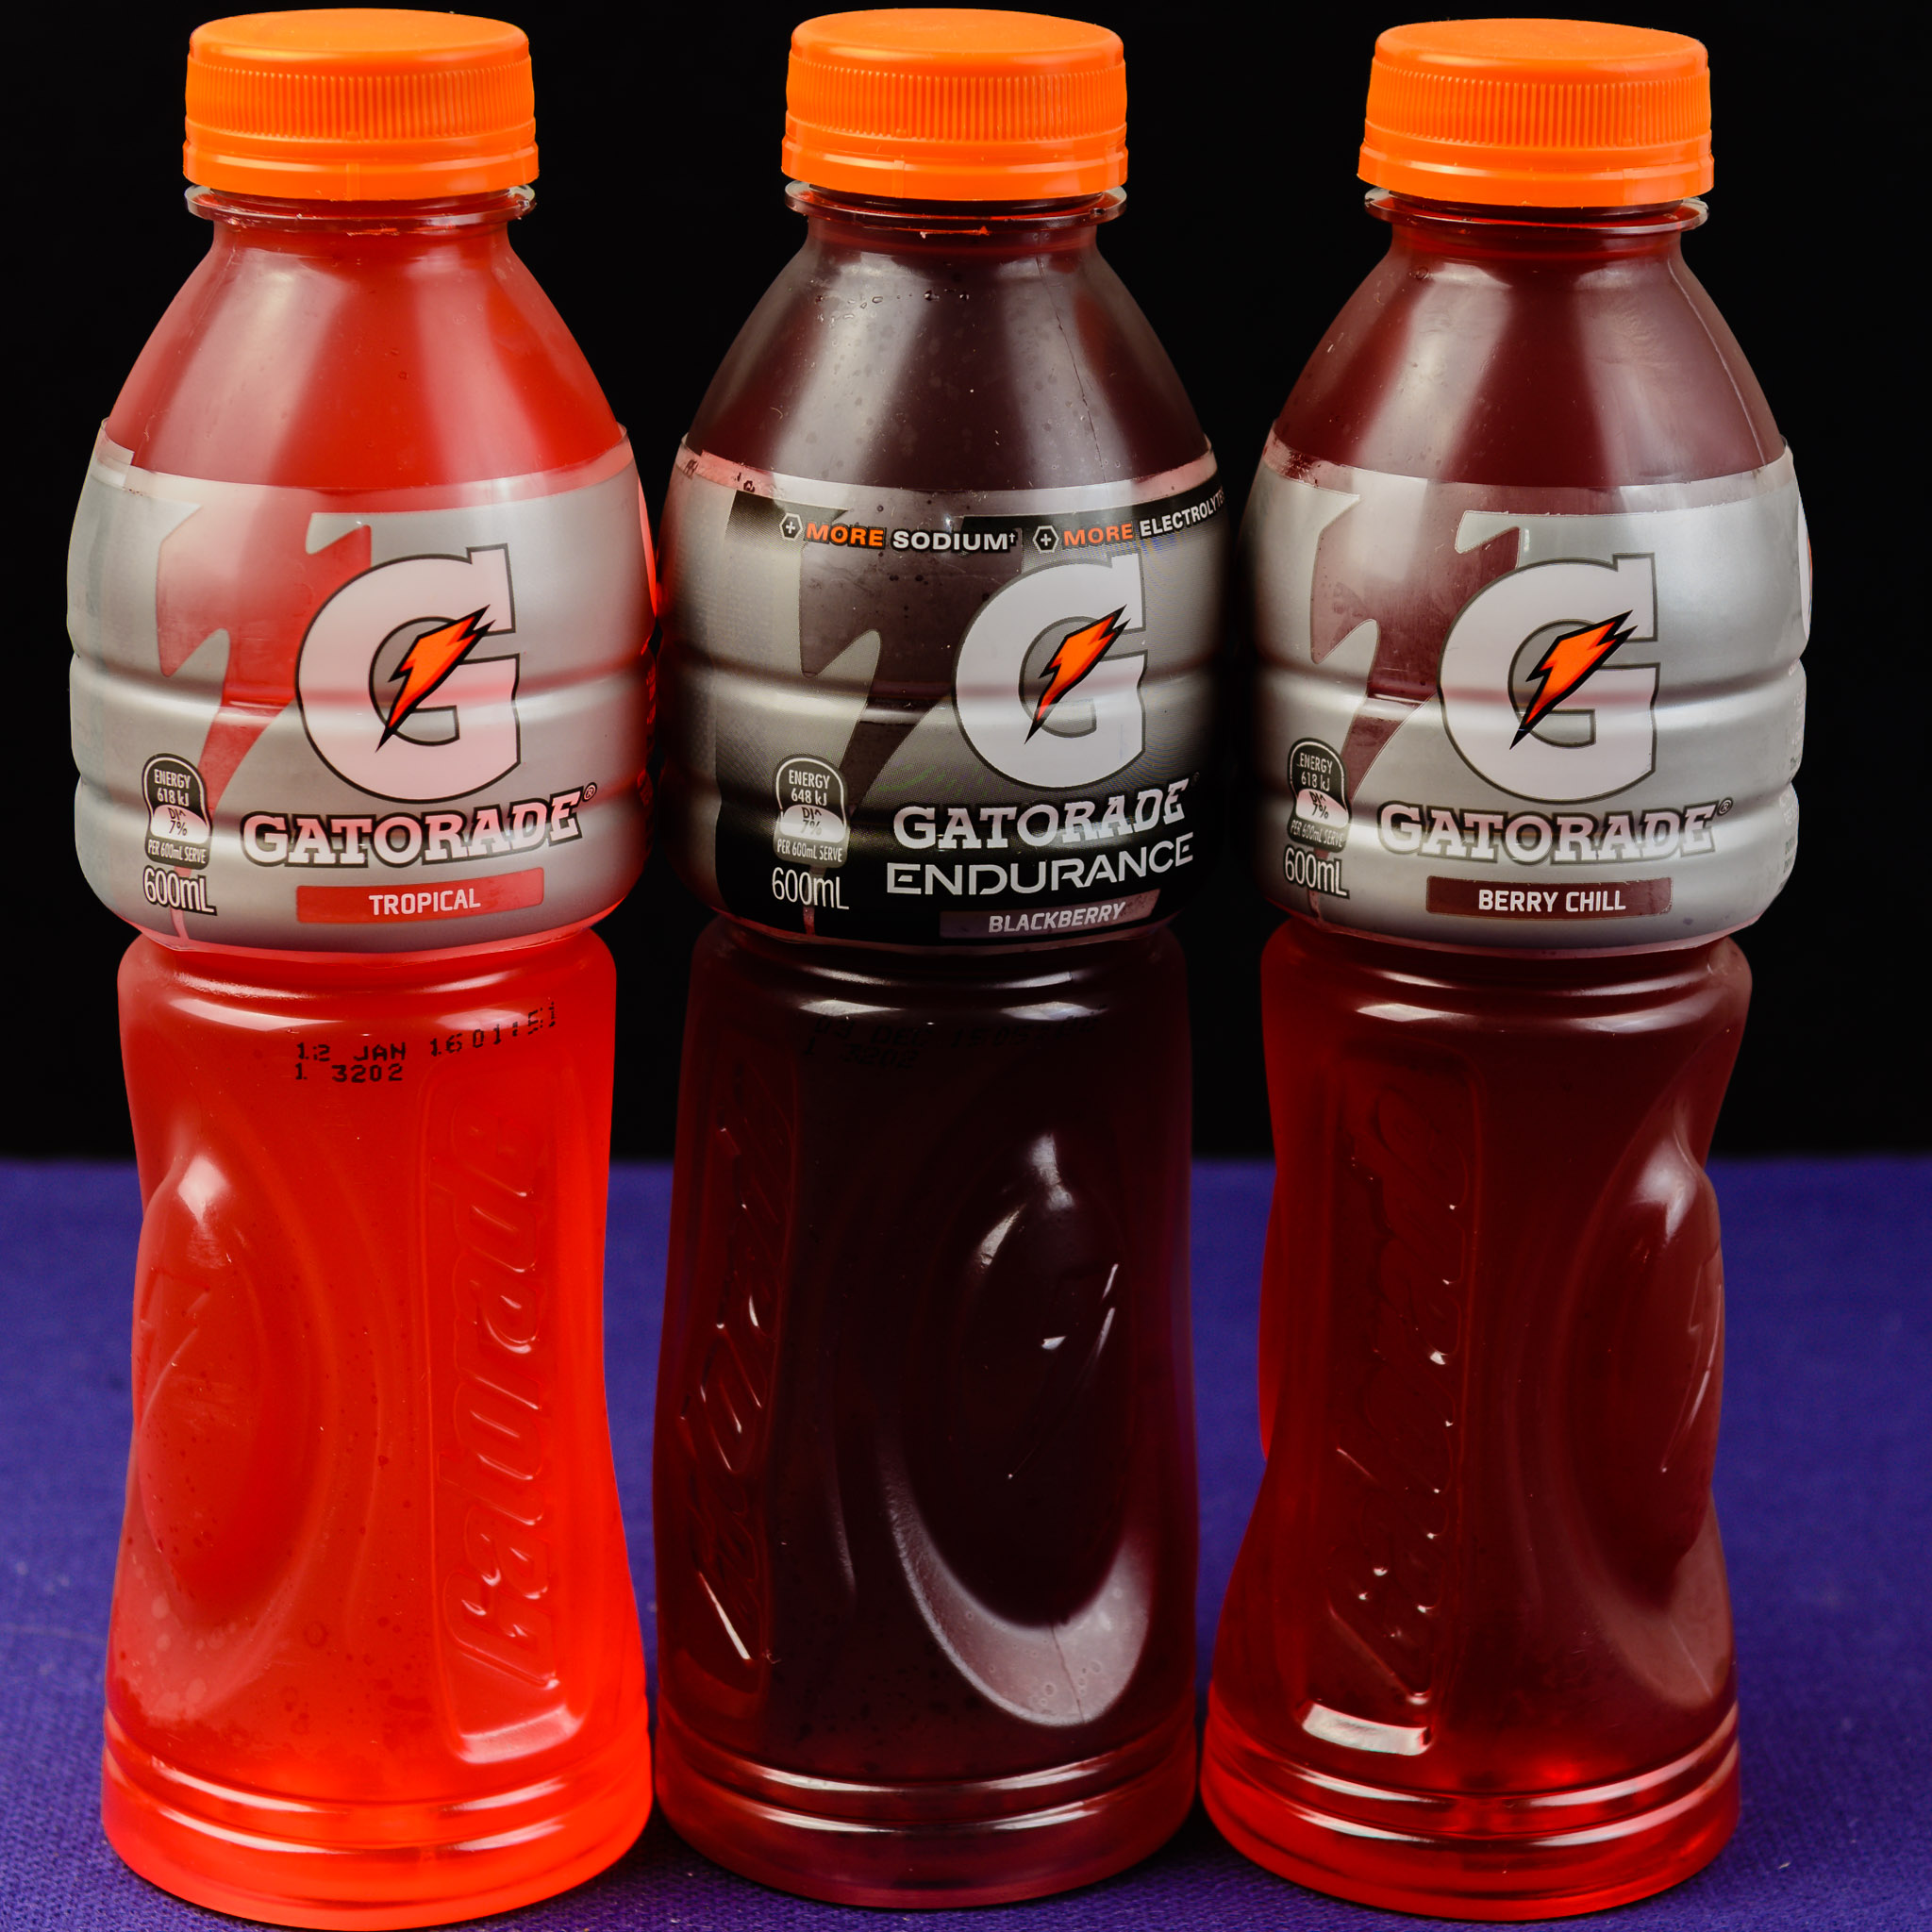 Gatorade tropical, blackberry and berry chill